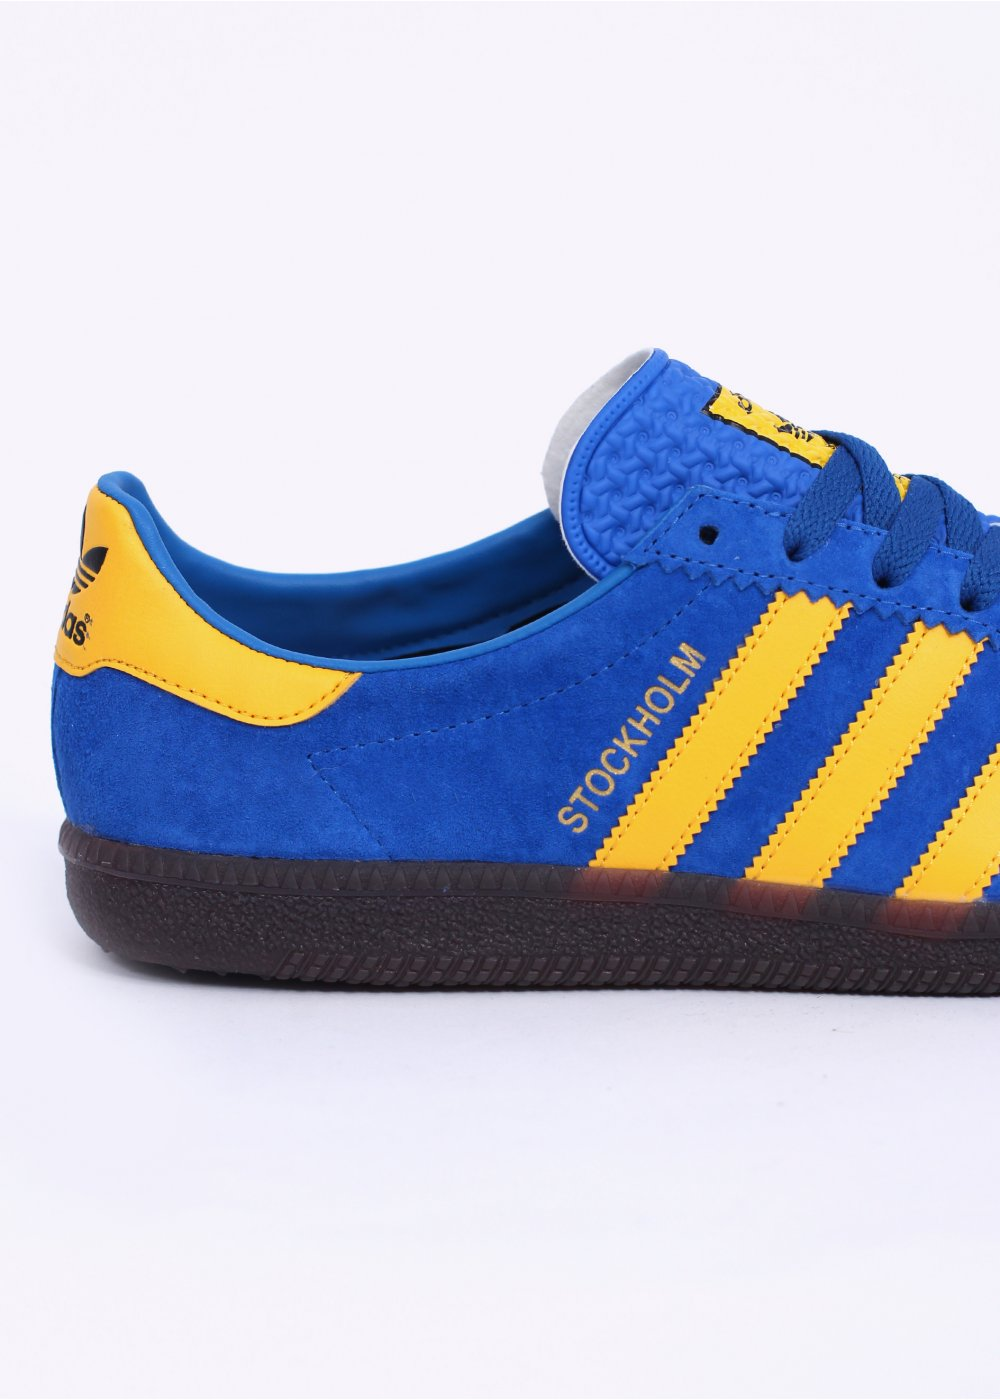 adidas Originals Footwear Stockholm OG Trainers Blue Yellow